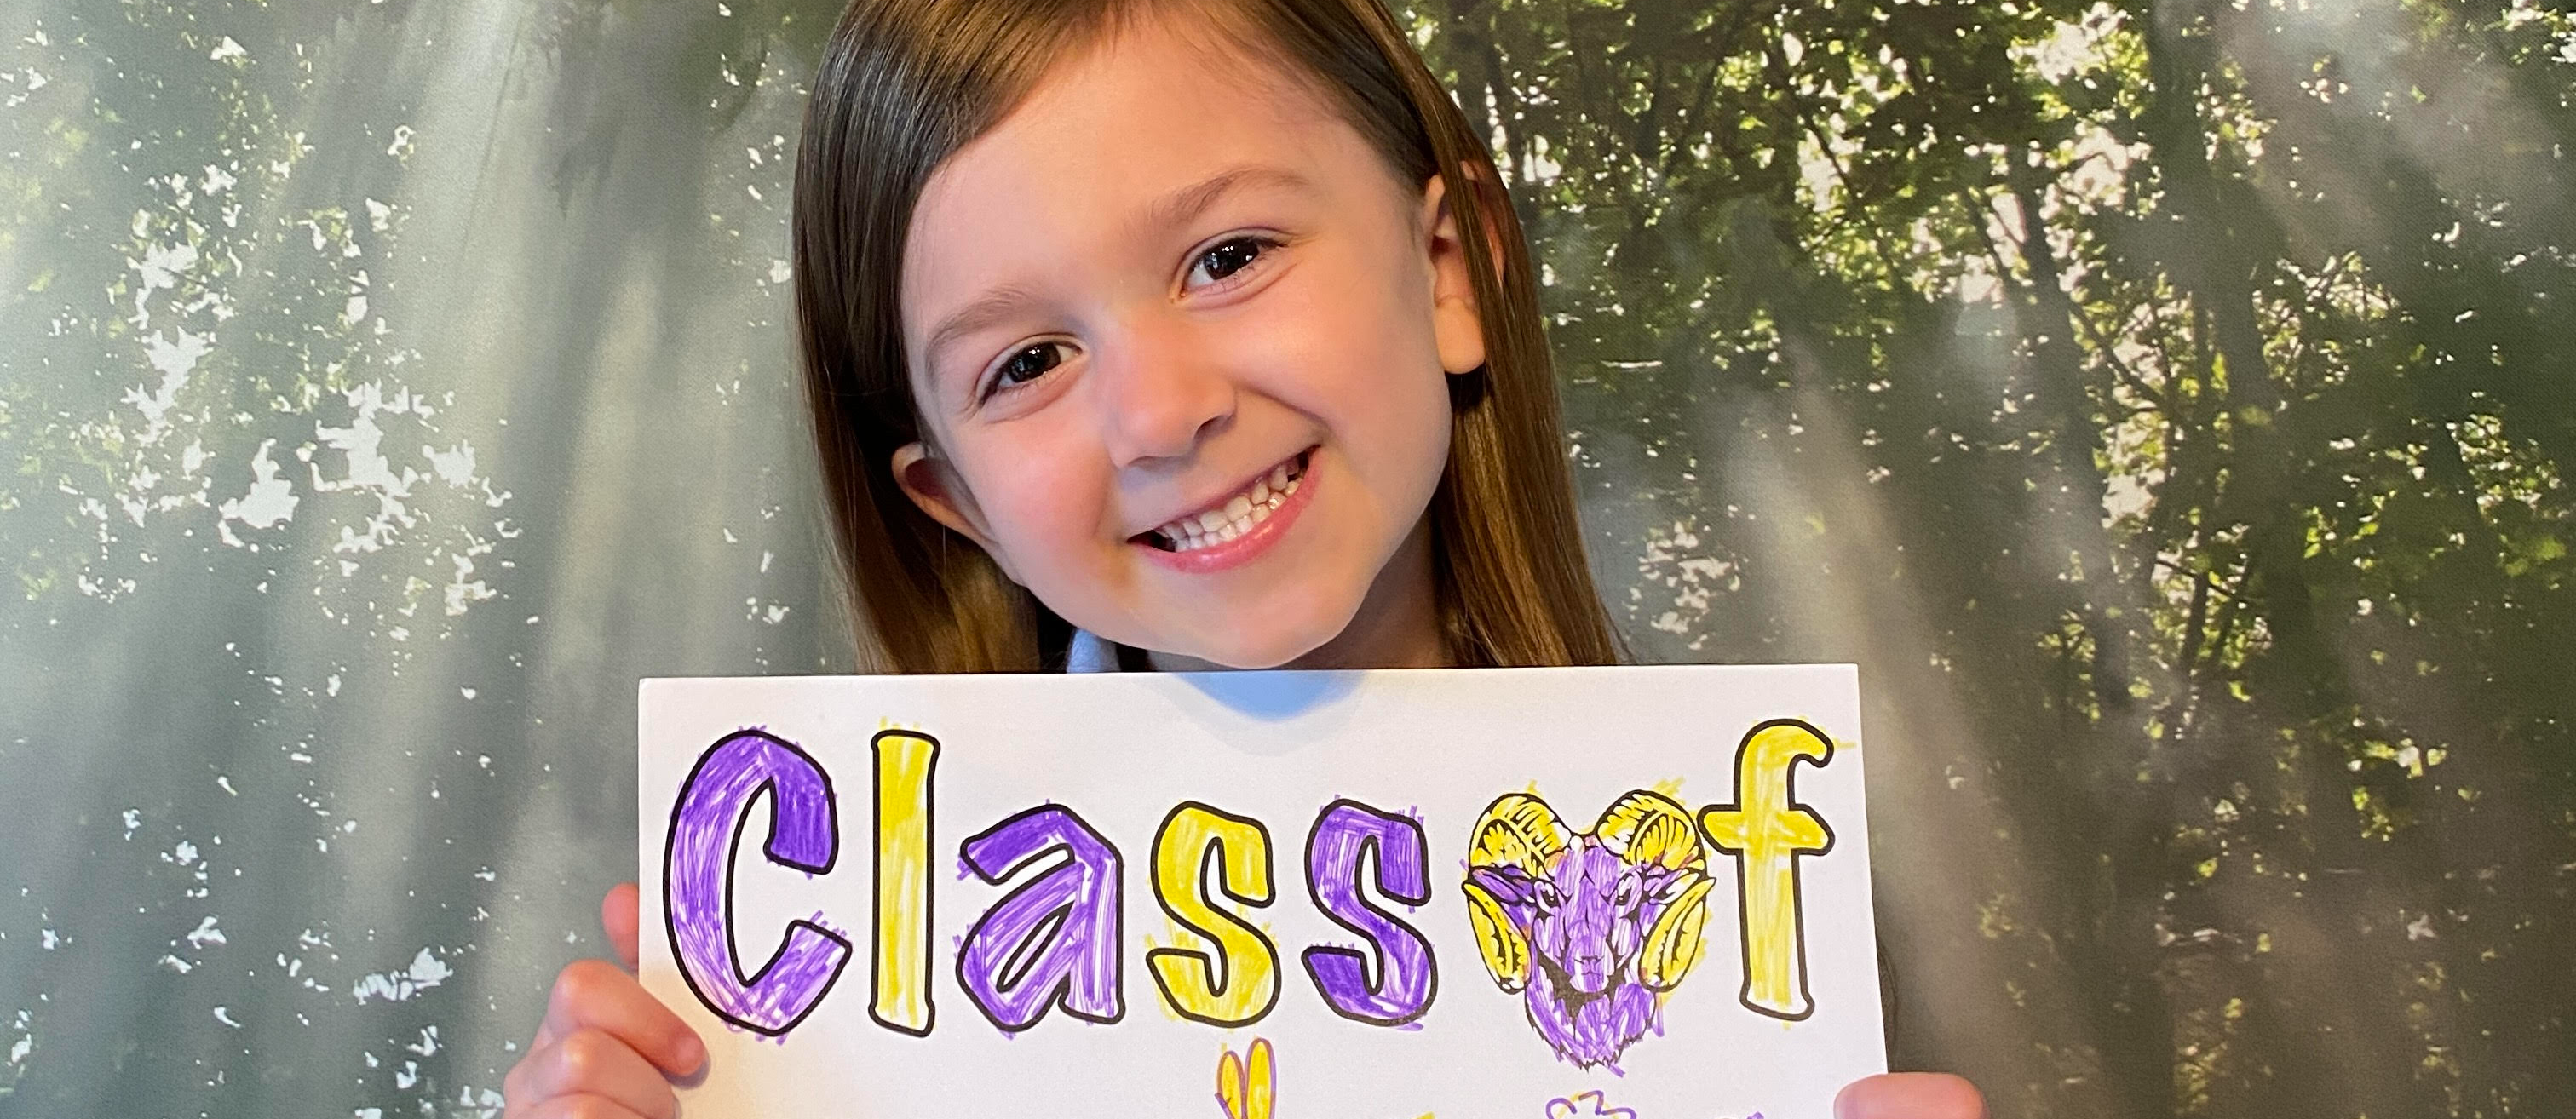 Student with Class of 2034 sign